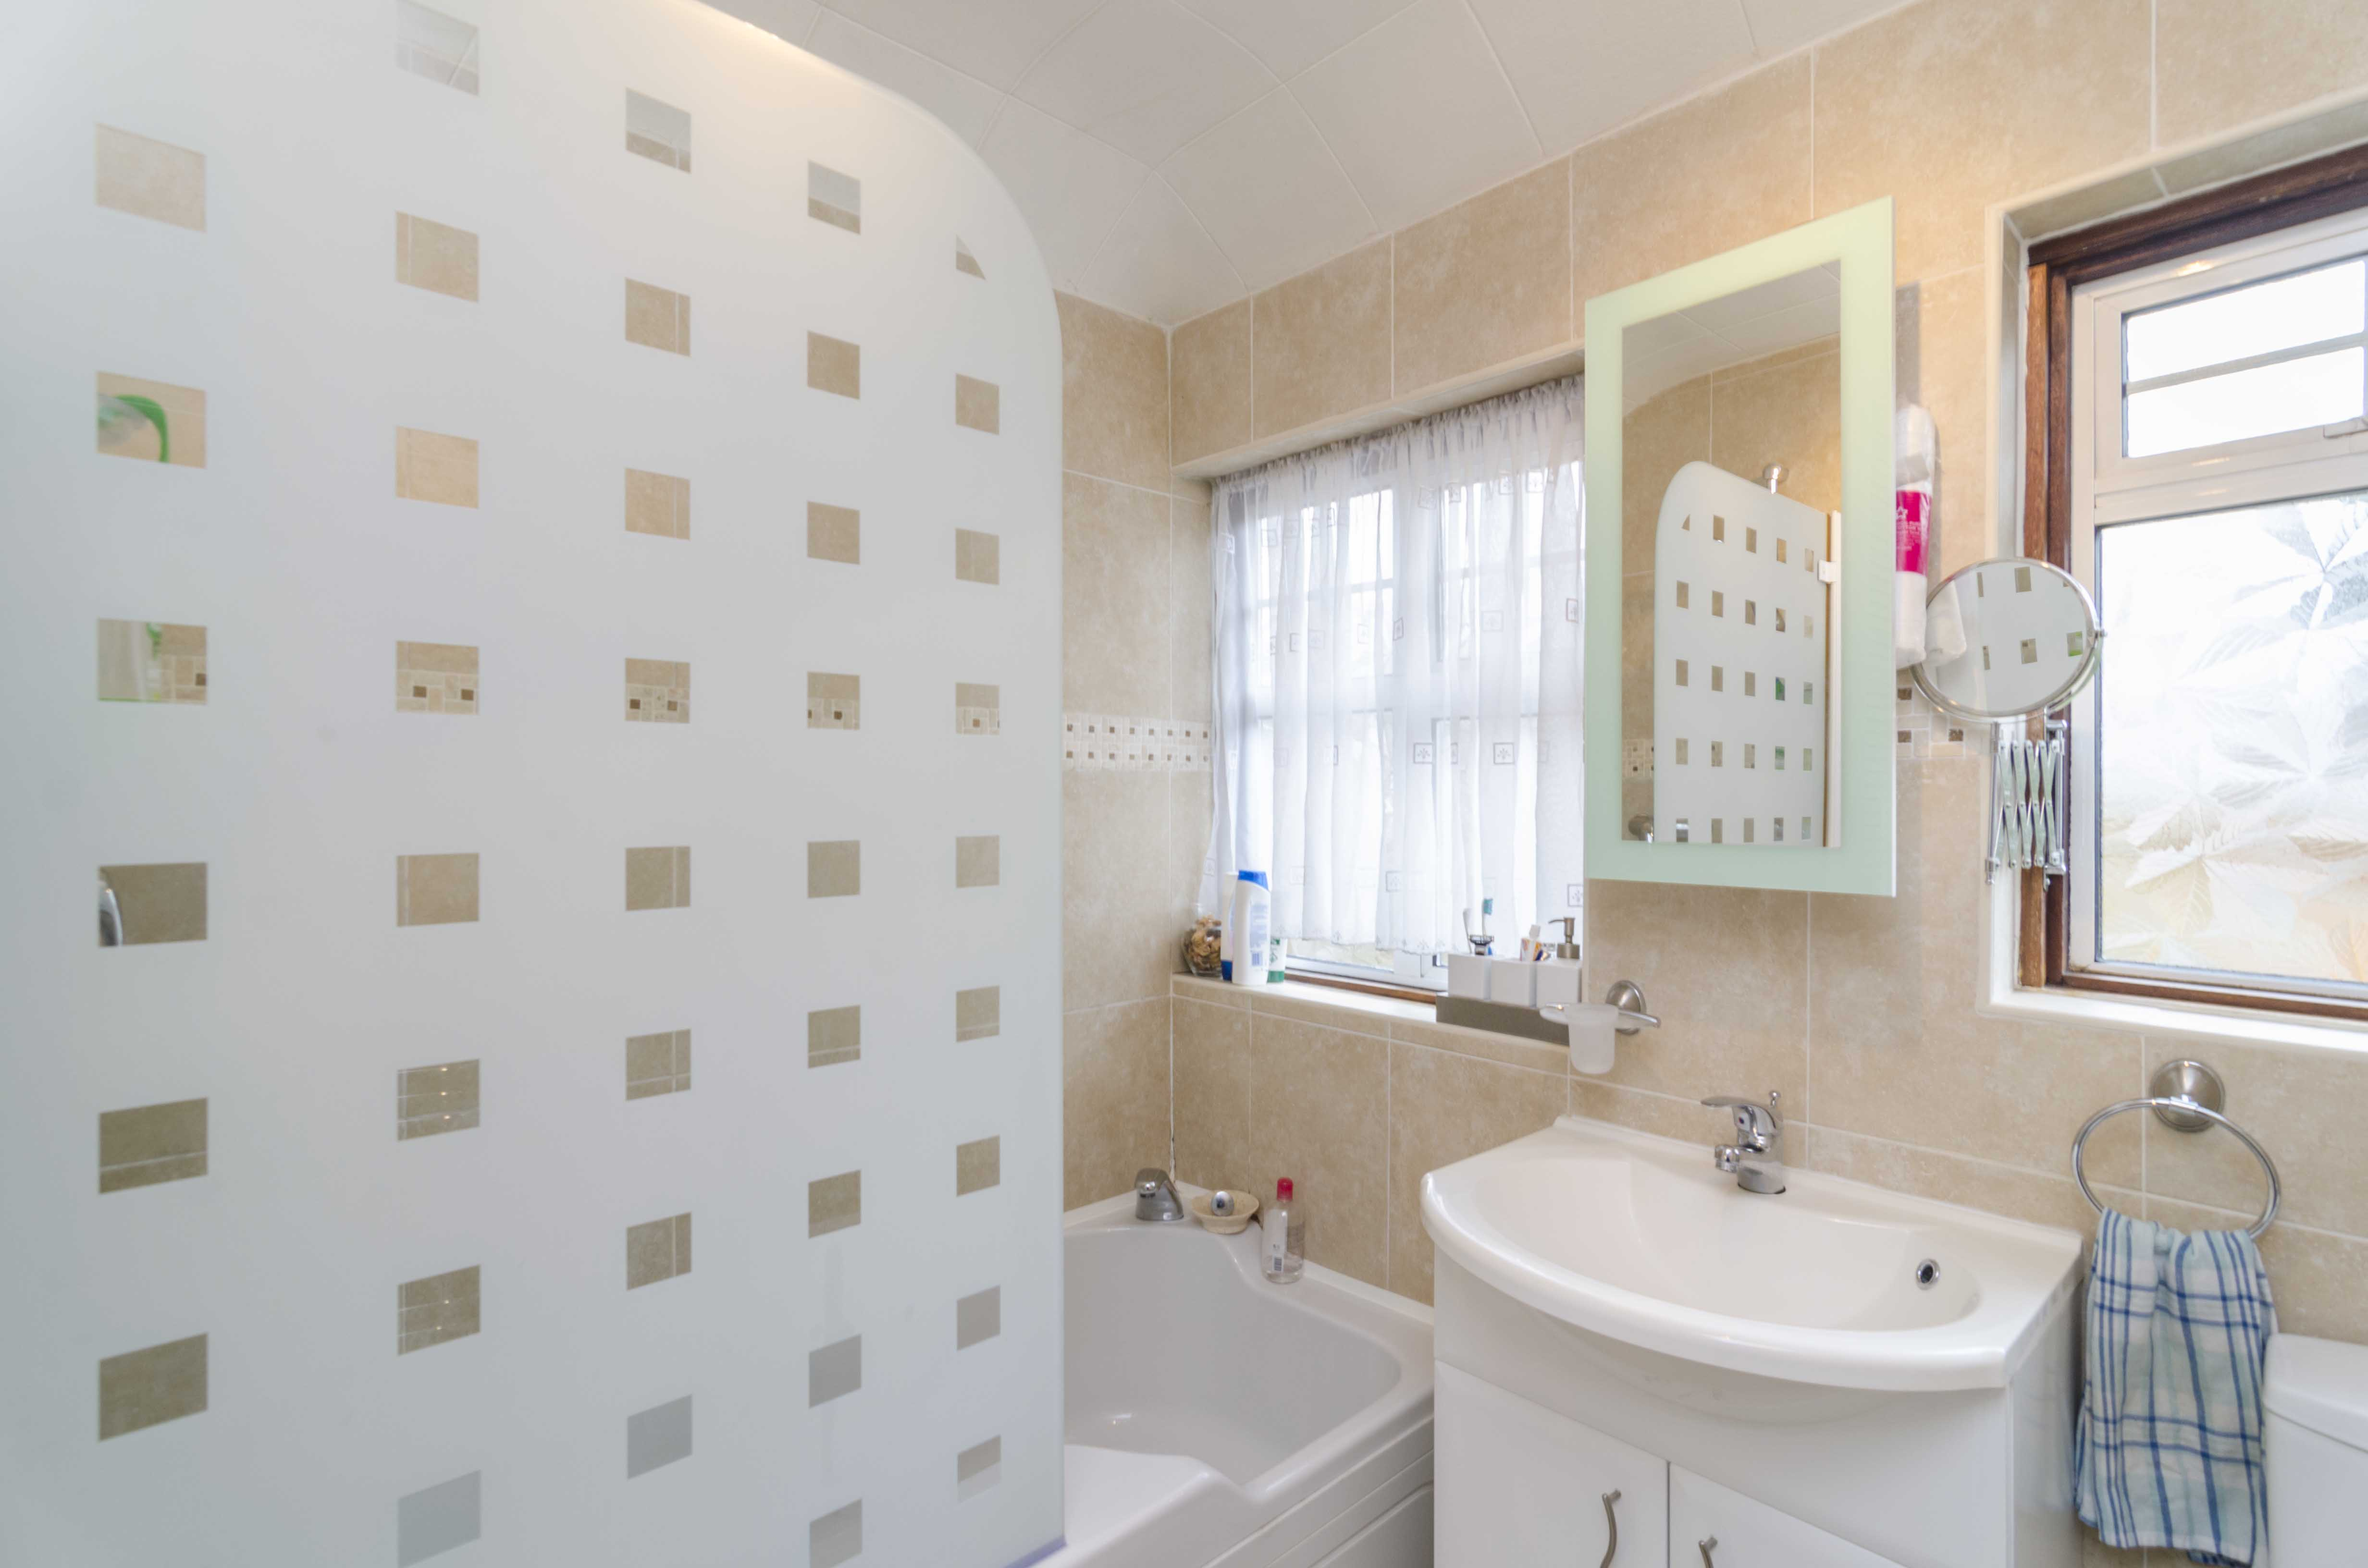 The House Photographer - Property Photography - Southgate 10